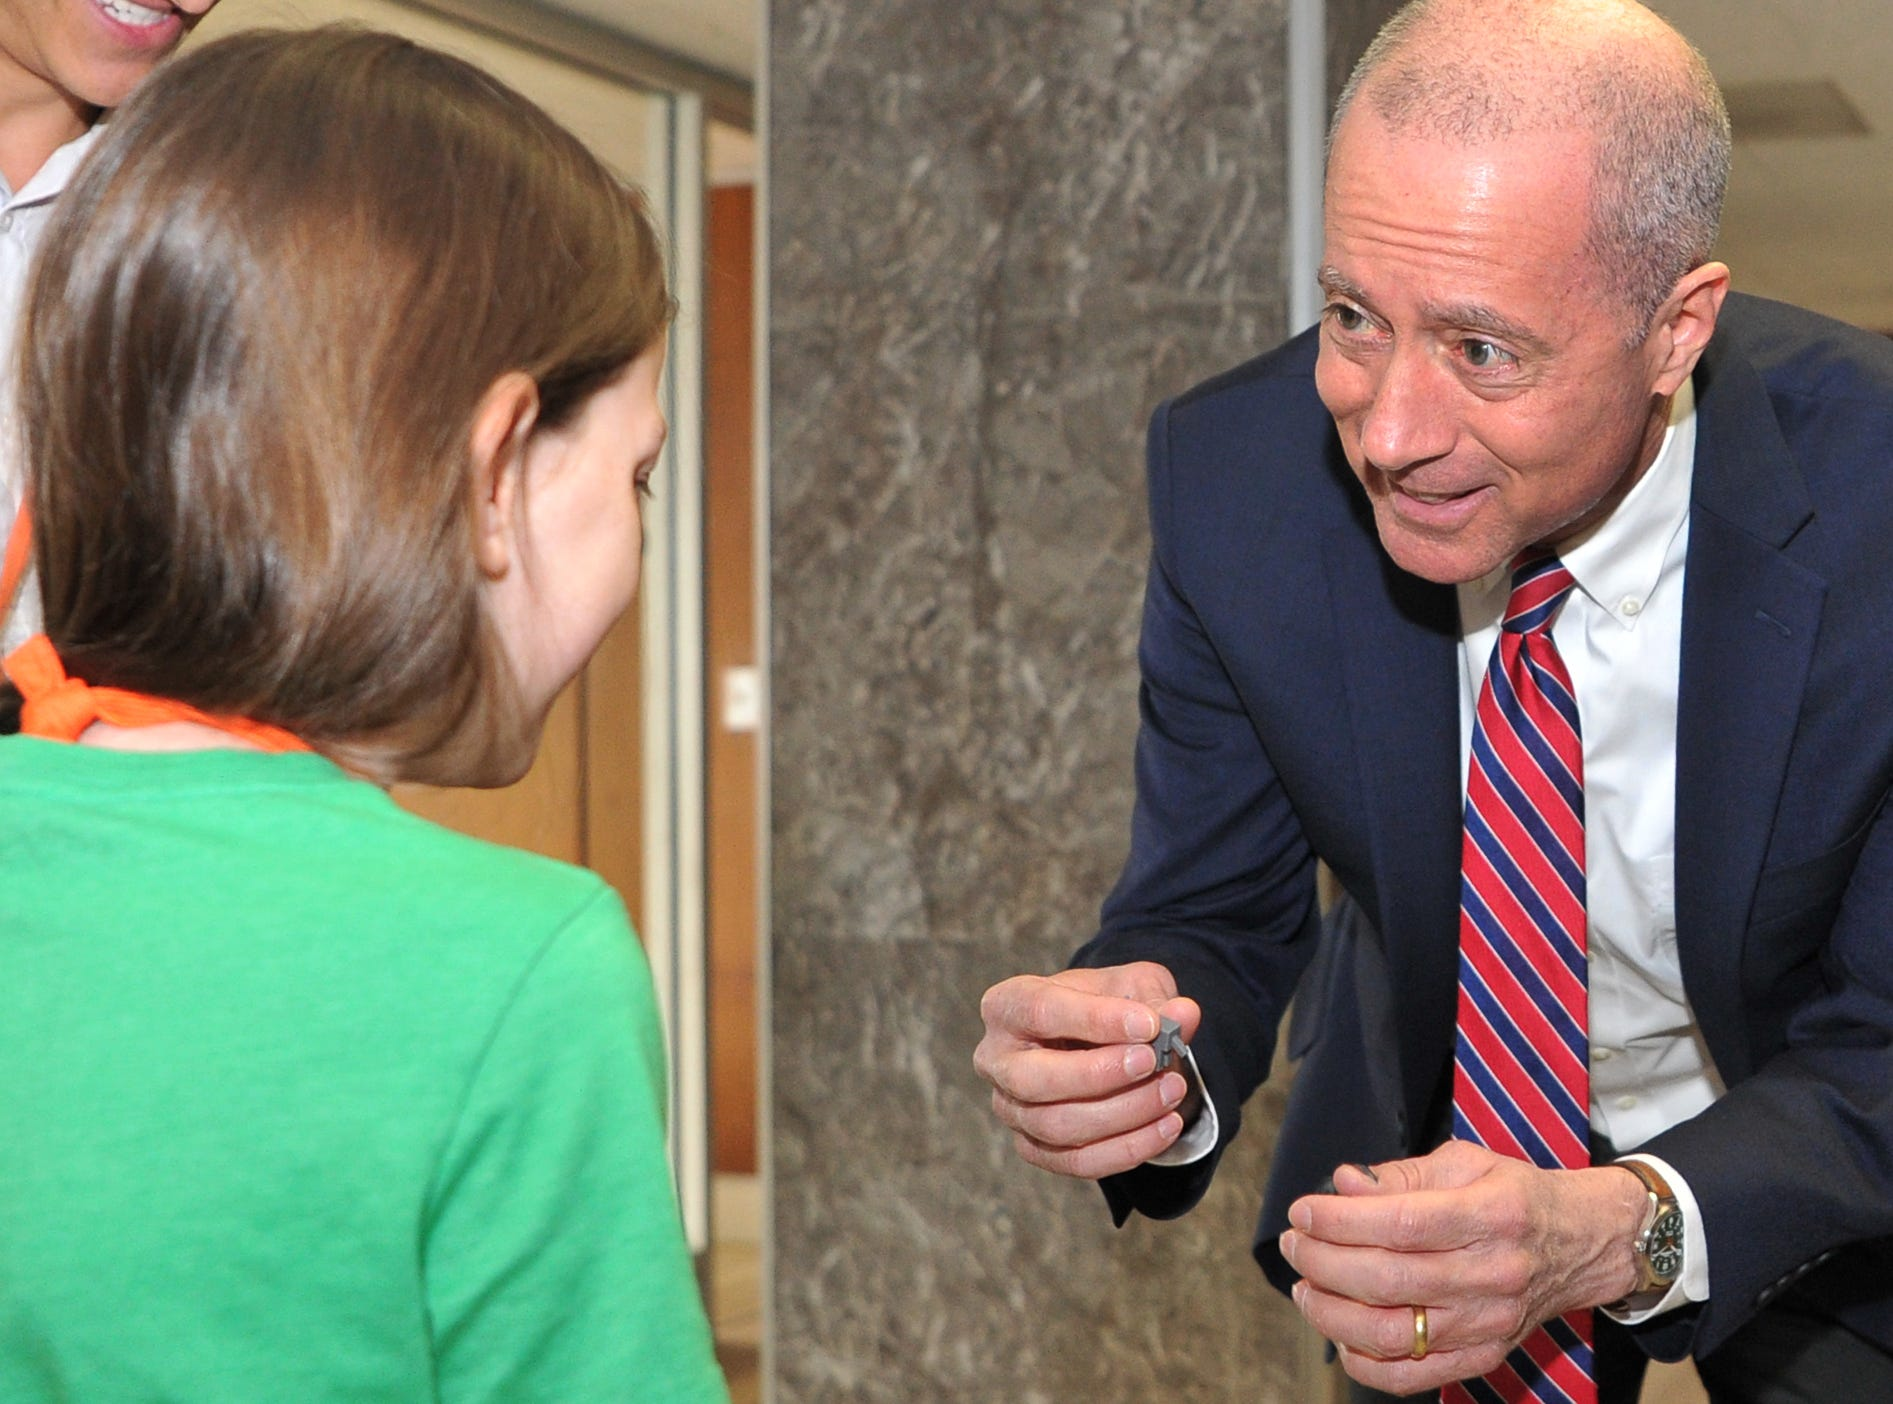 13th District, U.S Congressman, Mac Thornberry, right, talks with Dexter Learning student Reilley Havins, 11, about a 3D project she made while studying at the learning center located inside of the Big Blue building.